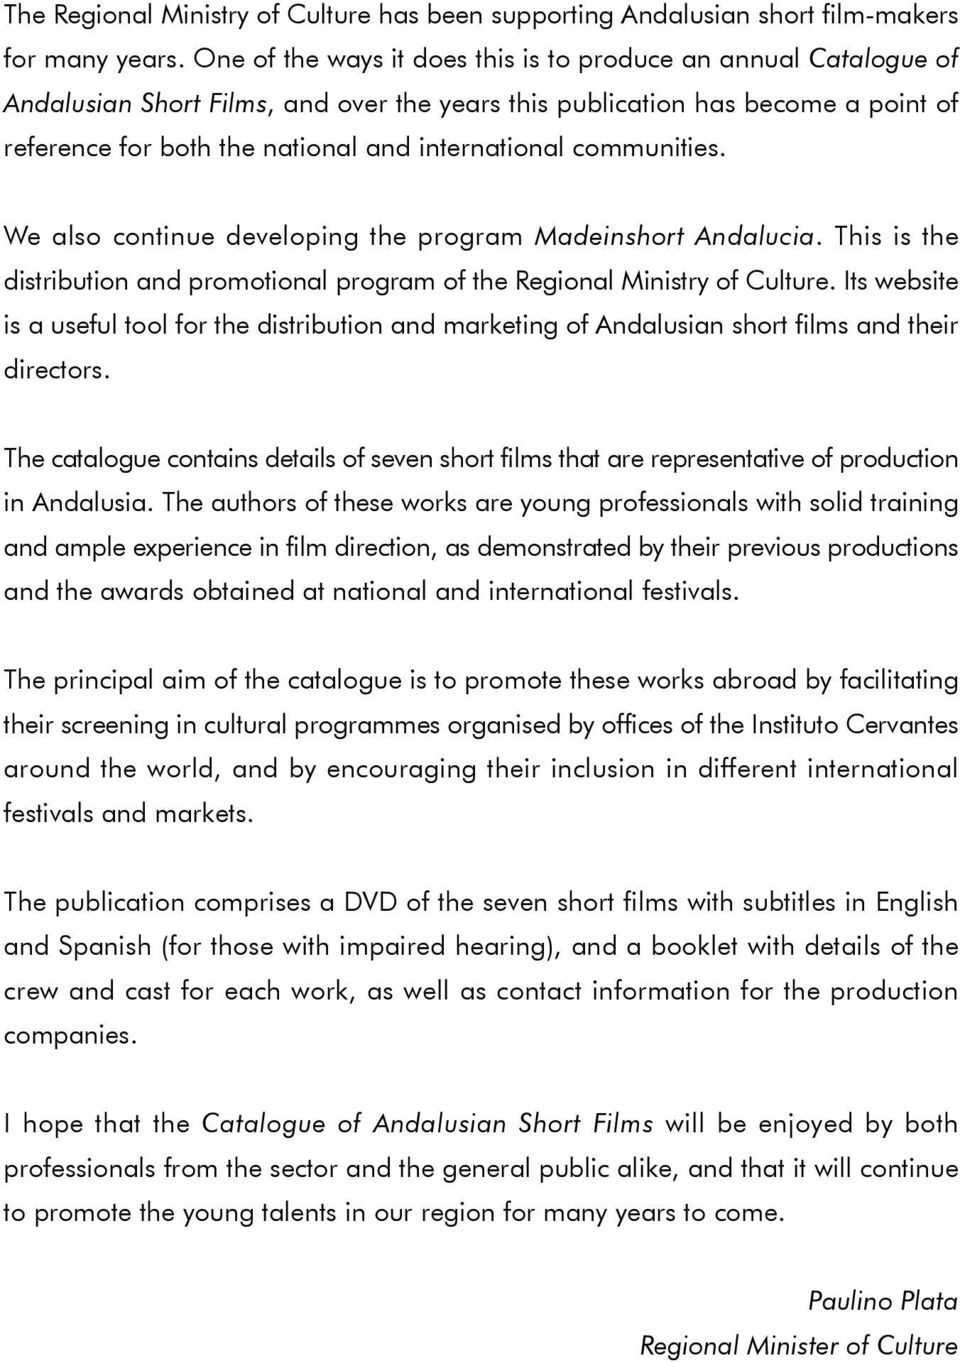 communities. We also continue developing the program Madeinshort Andalucia. This is the distribution and promotional program of the Regional Ministry of Culture.